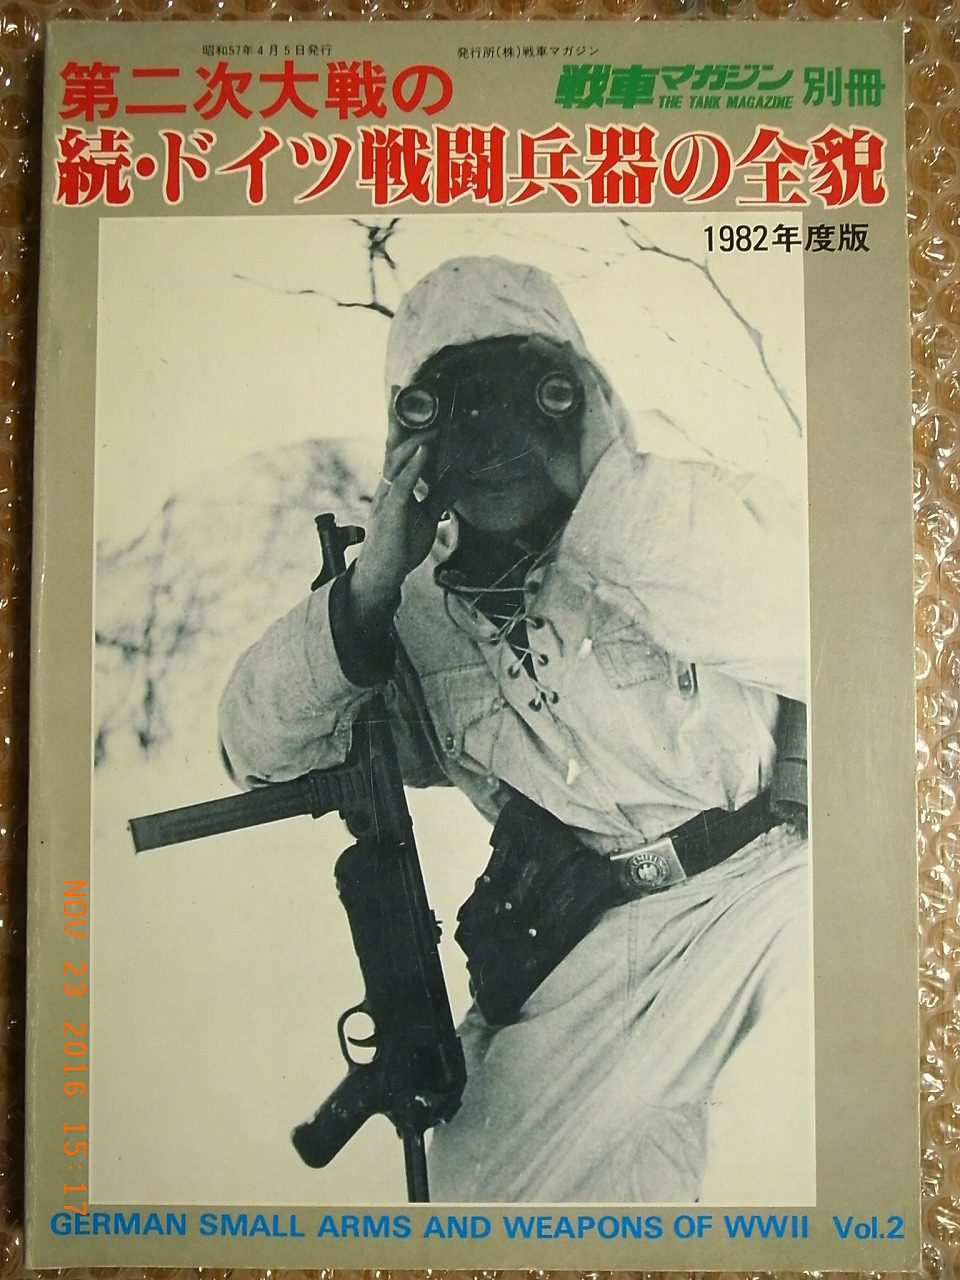 GERMAN WEAPONS OF W W II  PICTORIAL BOOK, TANK MAGAZINE SPECIAL ISSUE JAPAN